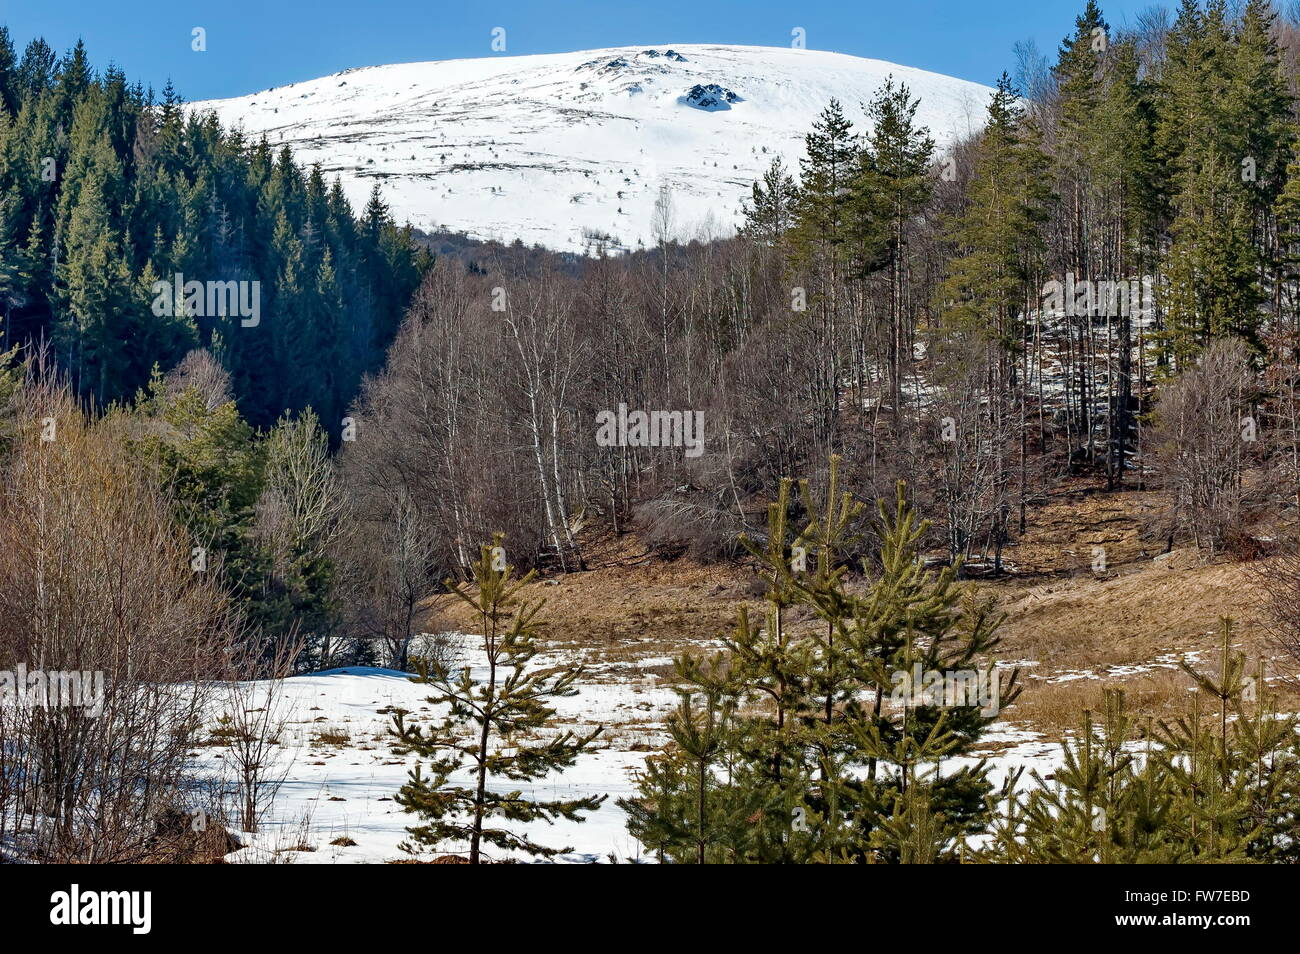 Conifer and birch forest with snow in winter - Stock Image